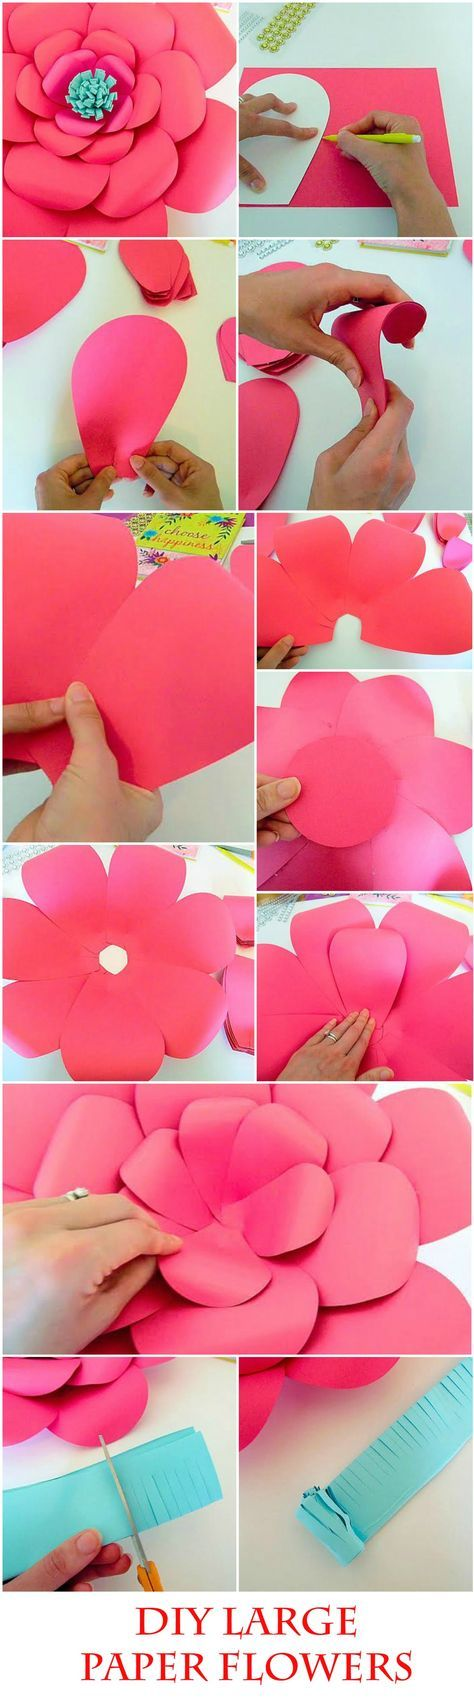 DIY Giant Paper flower templates & tutorial, DIY Paper flower making kit, SVG Paper flower cutting files, Large Backdrop flowers